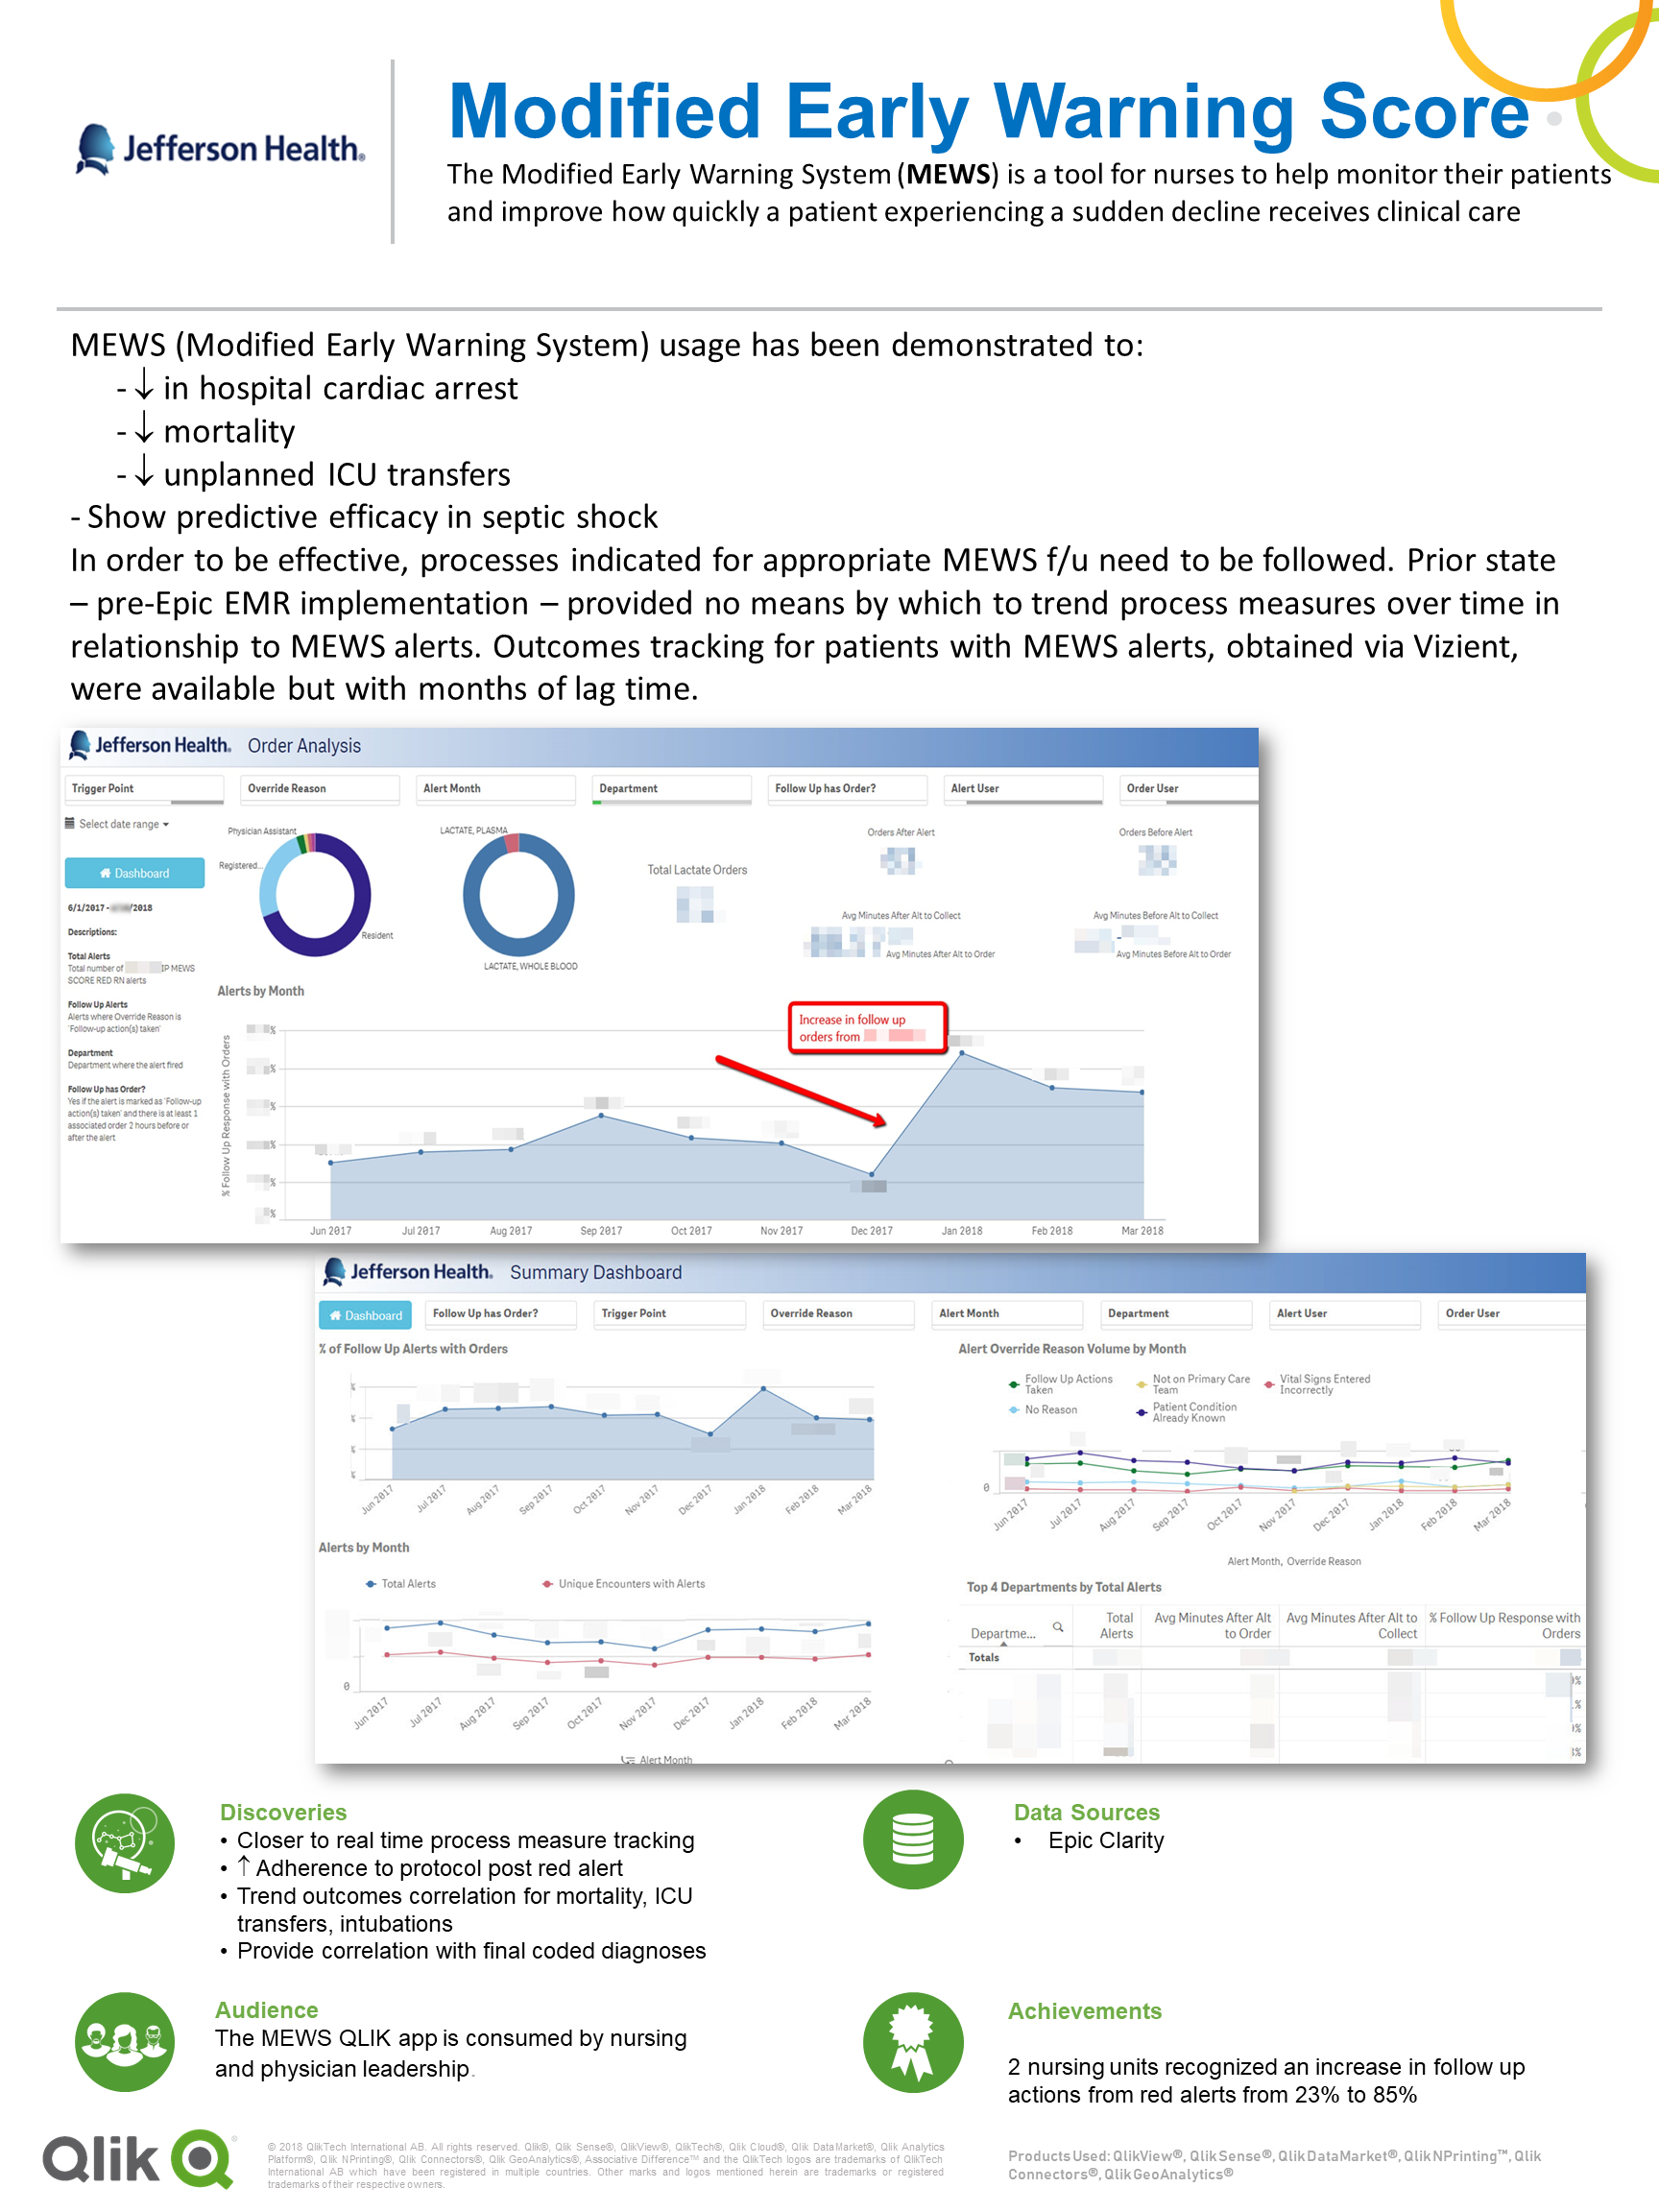 6 Qonnections Healthcare Poster - Jefferson Health - Modified Early Warning Score MEWS.png